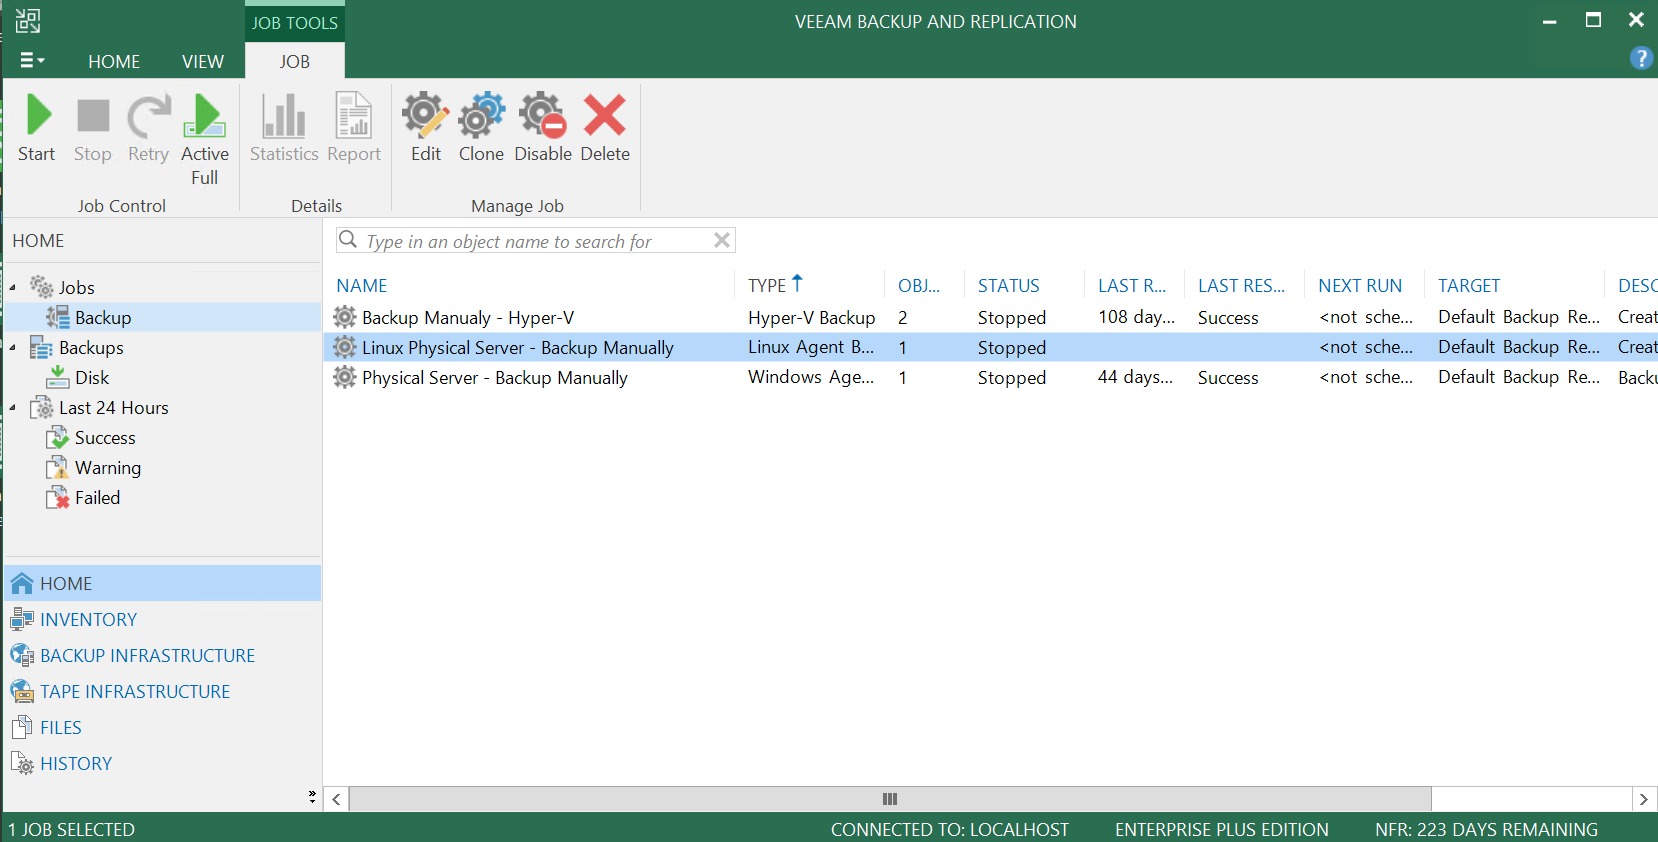 Finish the creation of the Veeam backup job.